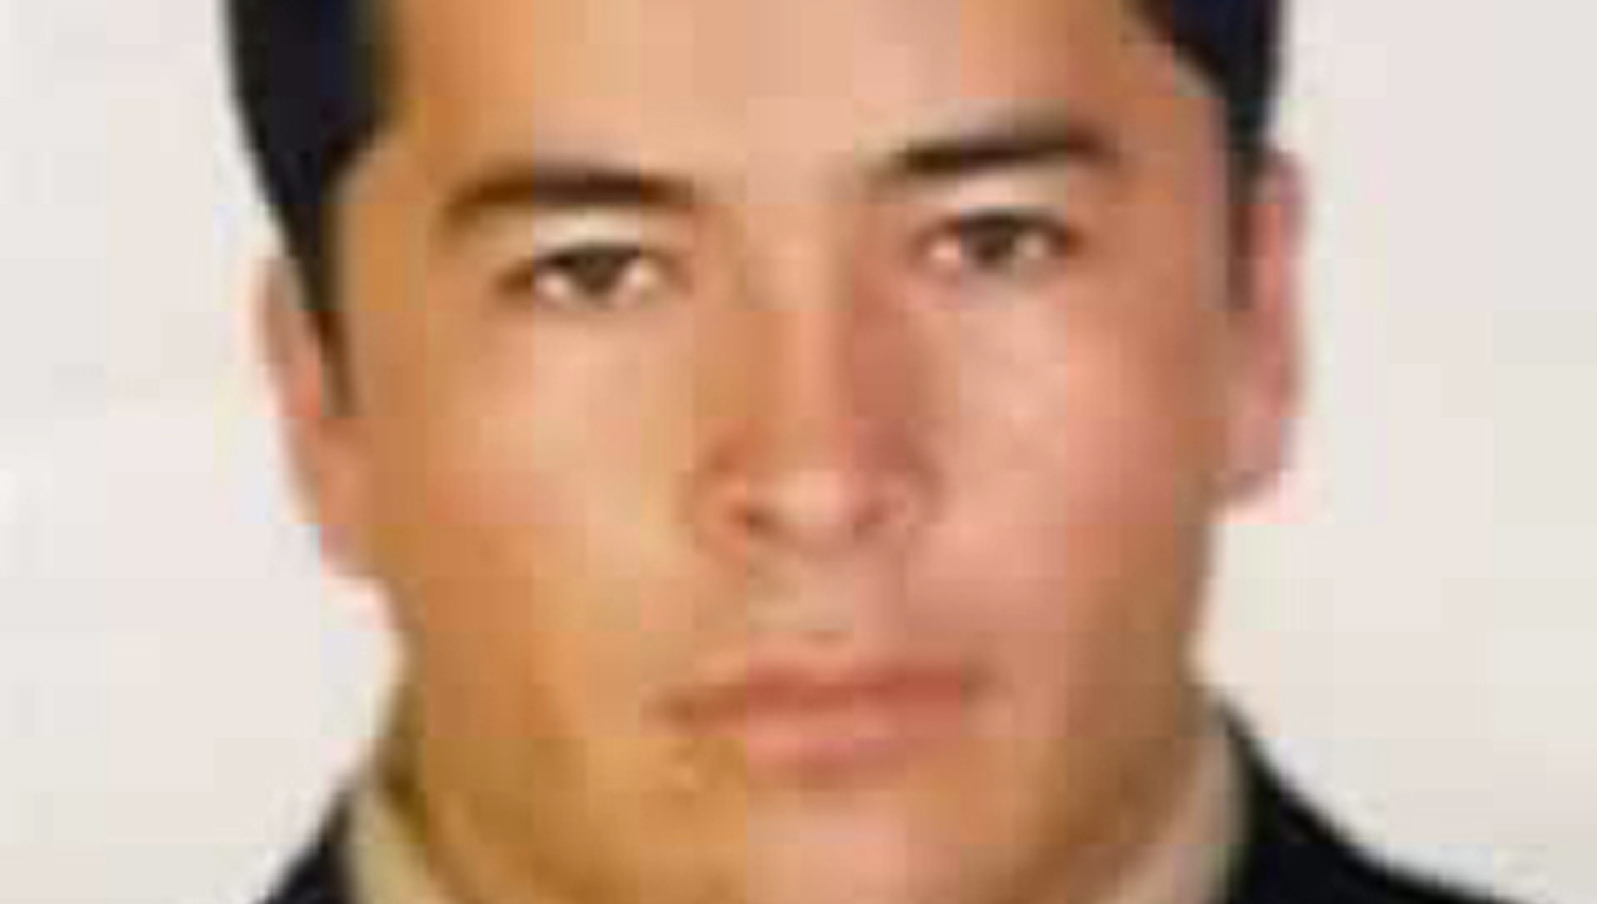 PHOTO:This undated file photo, downloaded from the Mexicos Attorney Generals Office most wanted criminals webpage on Nov. 2, 2010, shows alleged Zeta drug cartel leader and founder Heriberto Lazcano Lazcano in an undisclosed location. The Mexican navy